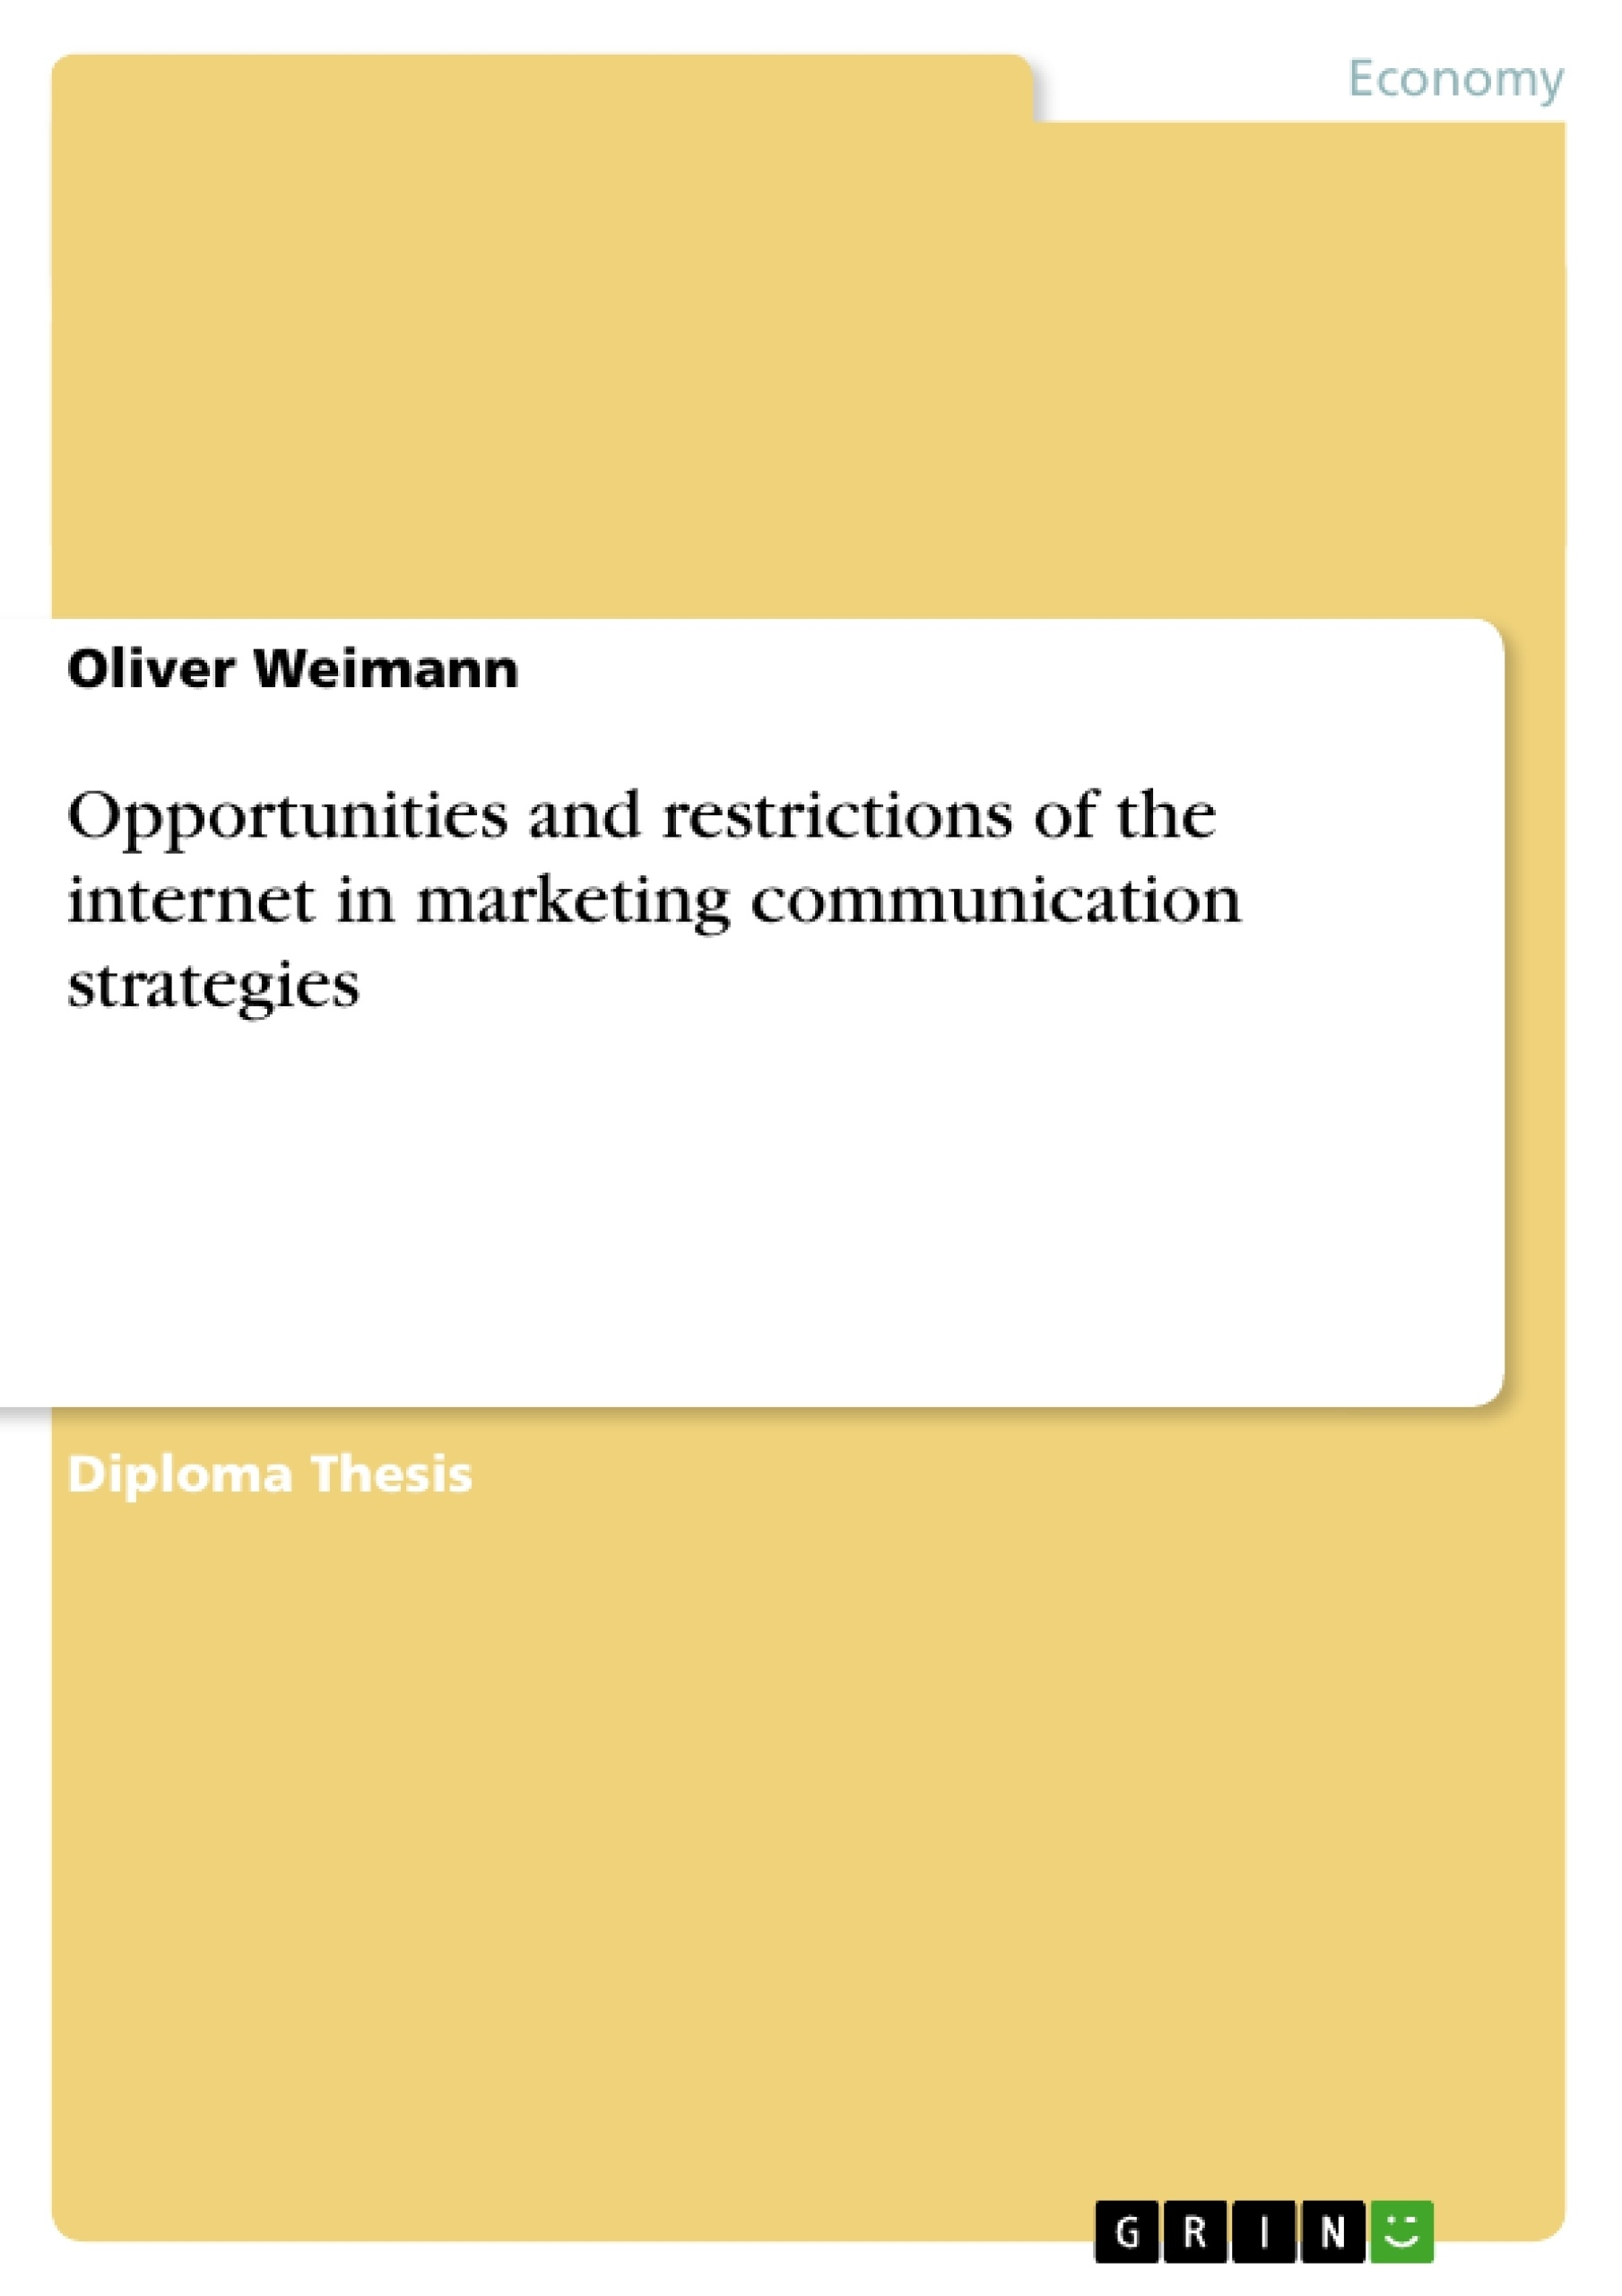 Title: Opportunities and restrictions of the internet in marketing communication strategies